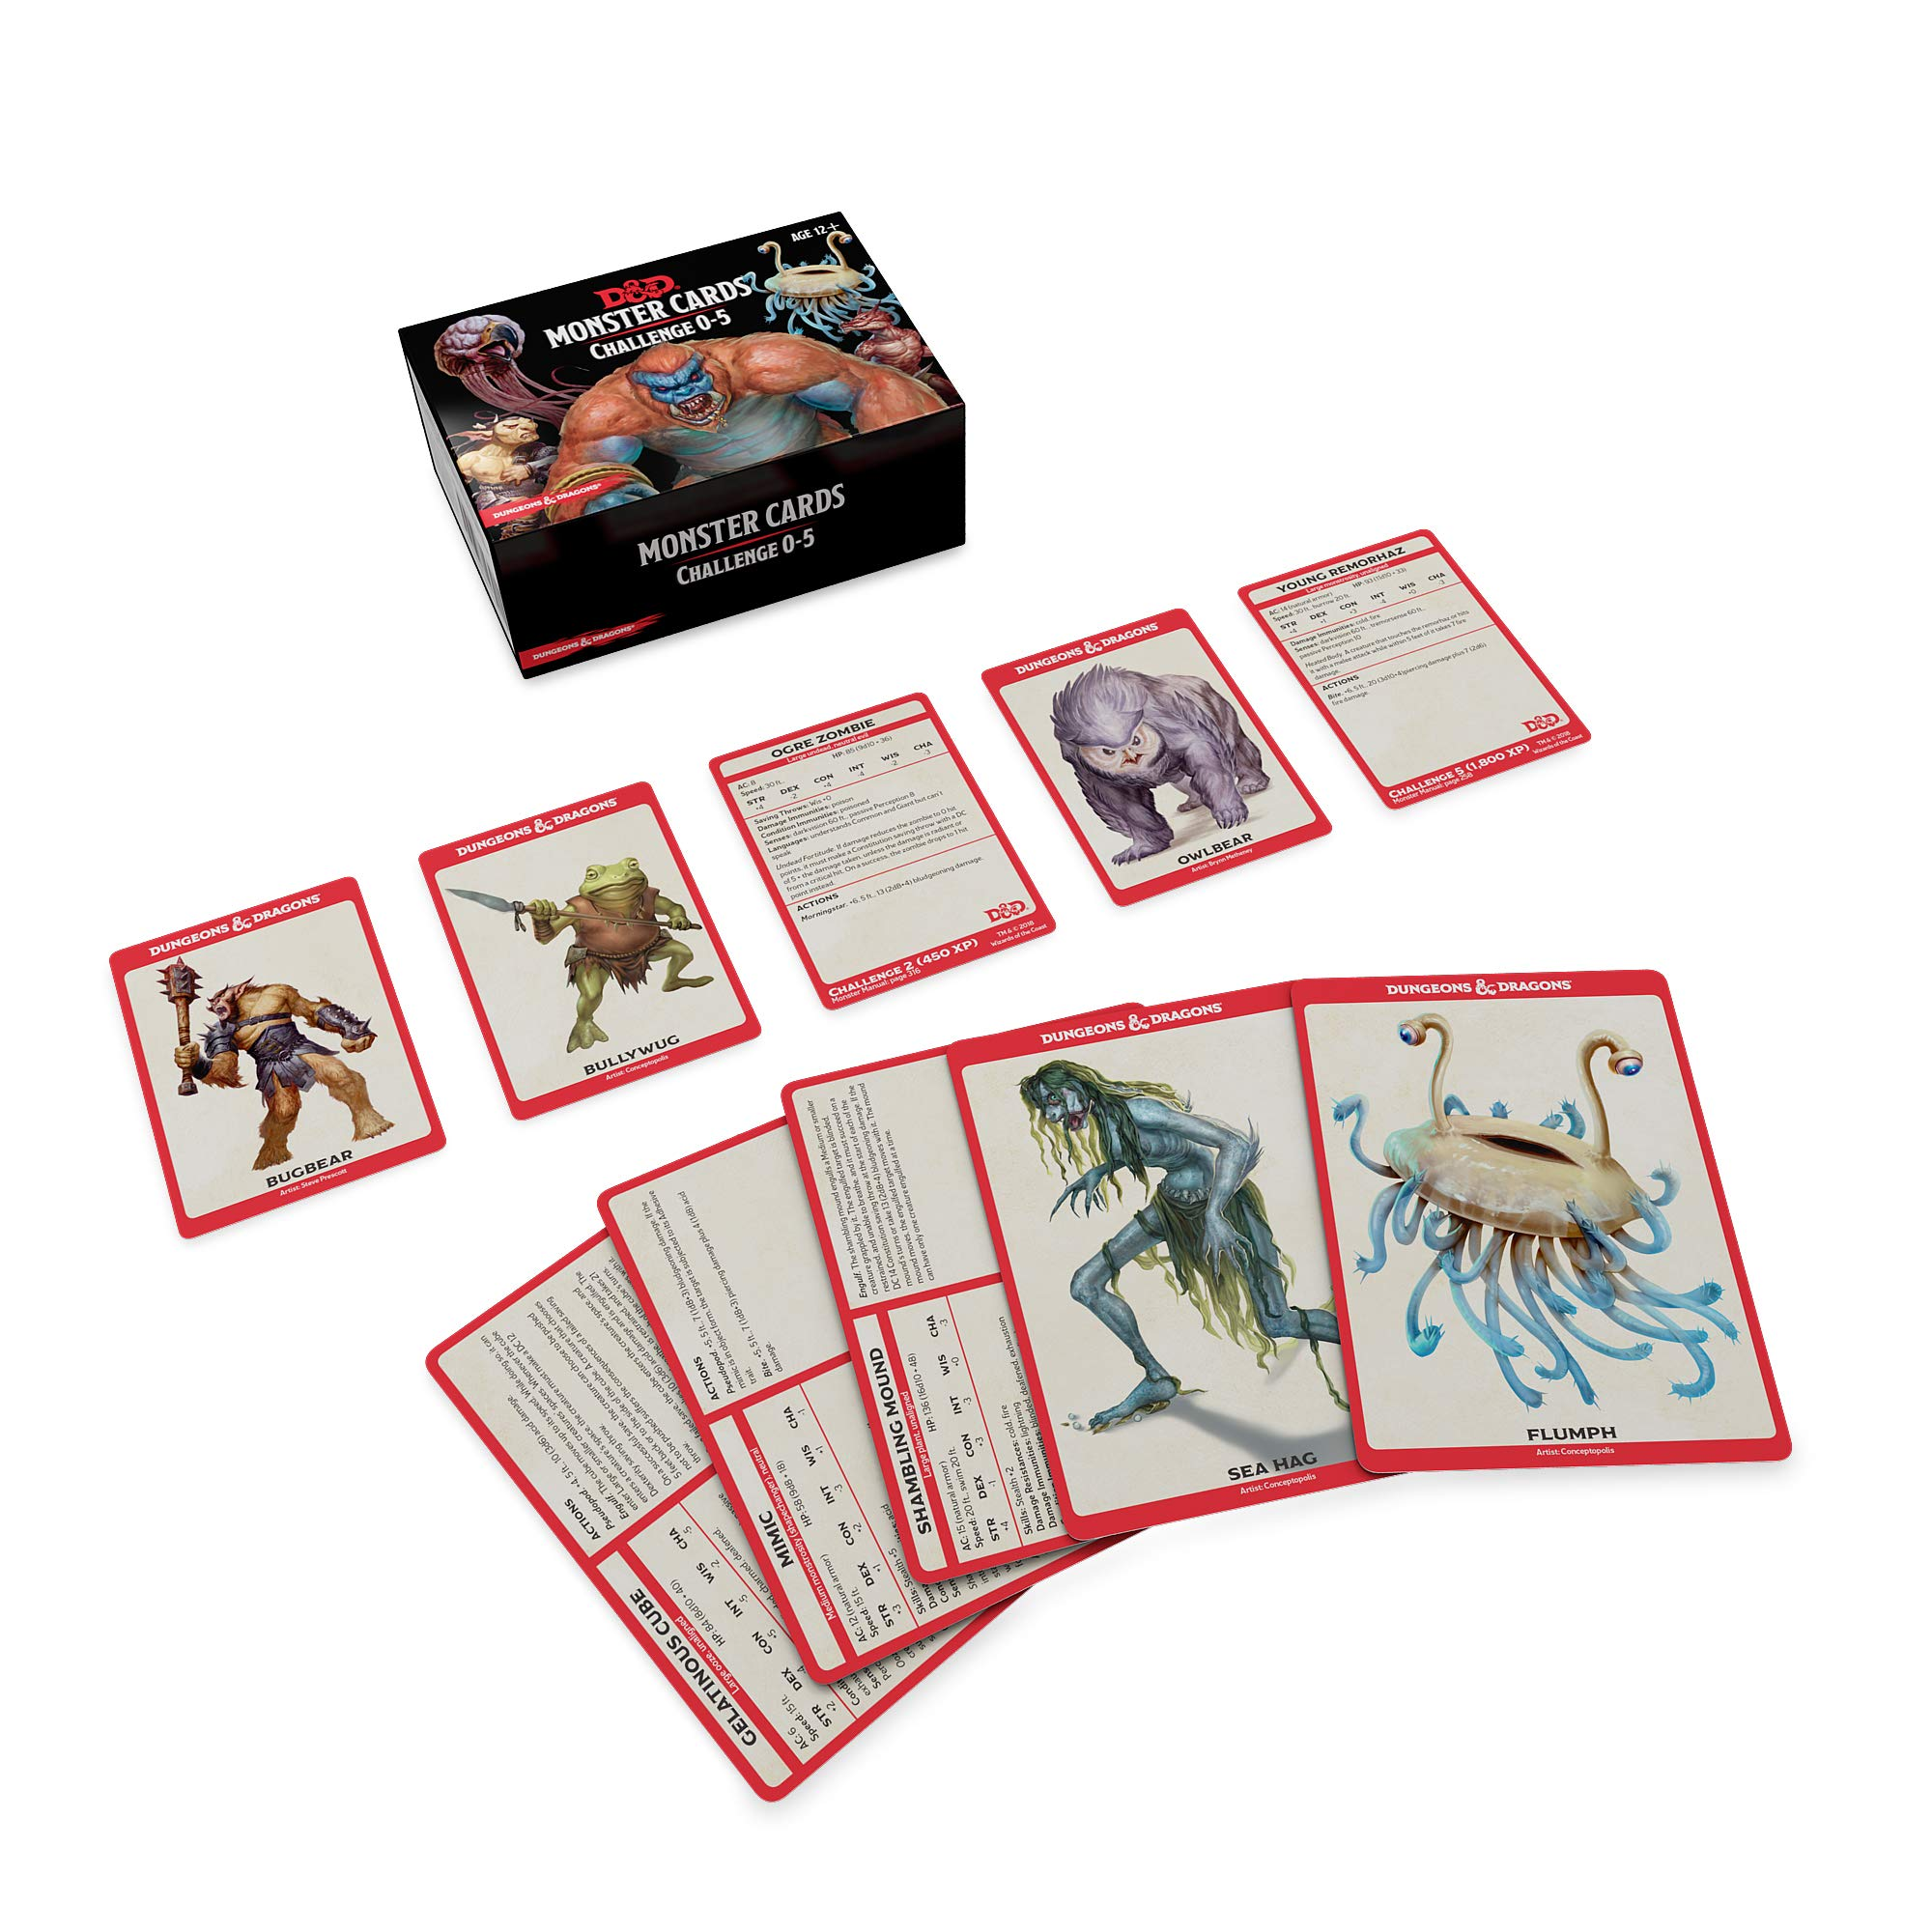 Dungeons & Dragons Spellbook Cards: Monsters 0-5 D&d Accessory: Amazon.es: Wizards Rpg Team: Libros en idiomas extranjeros